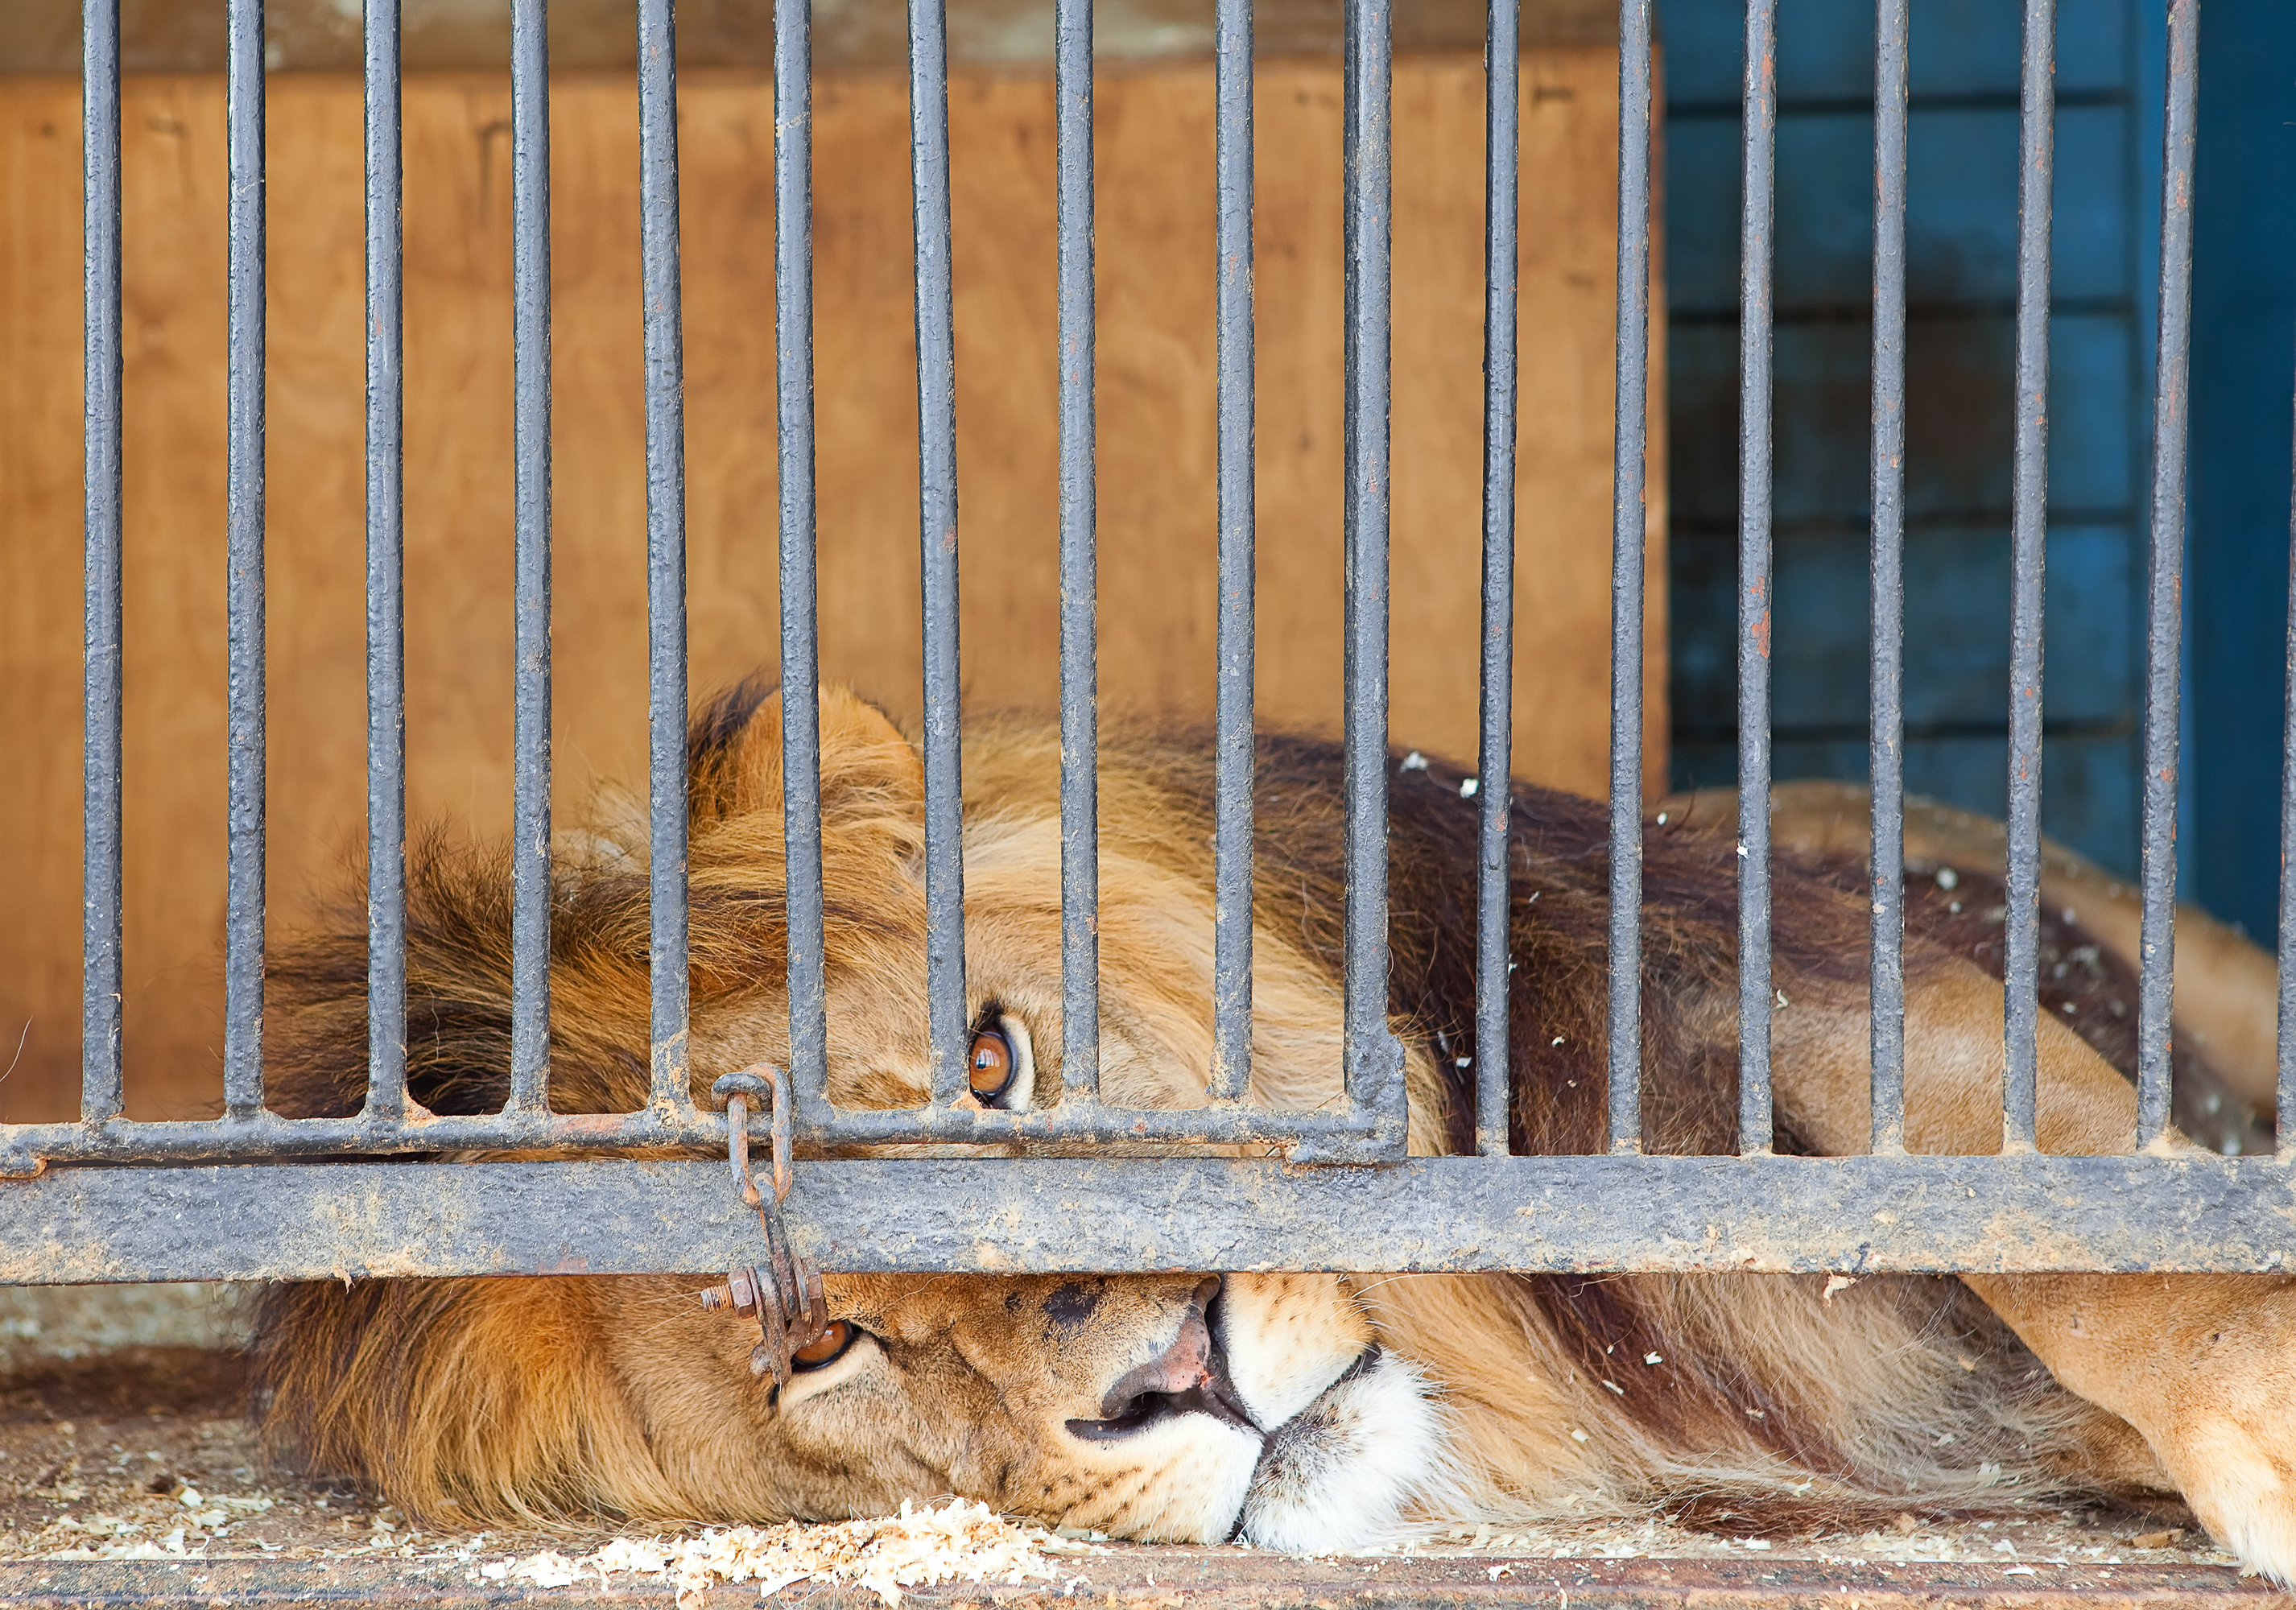 Caged King, Bars, Caged, Cat, King, HQ Photo